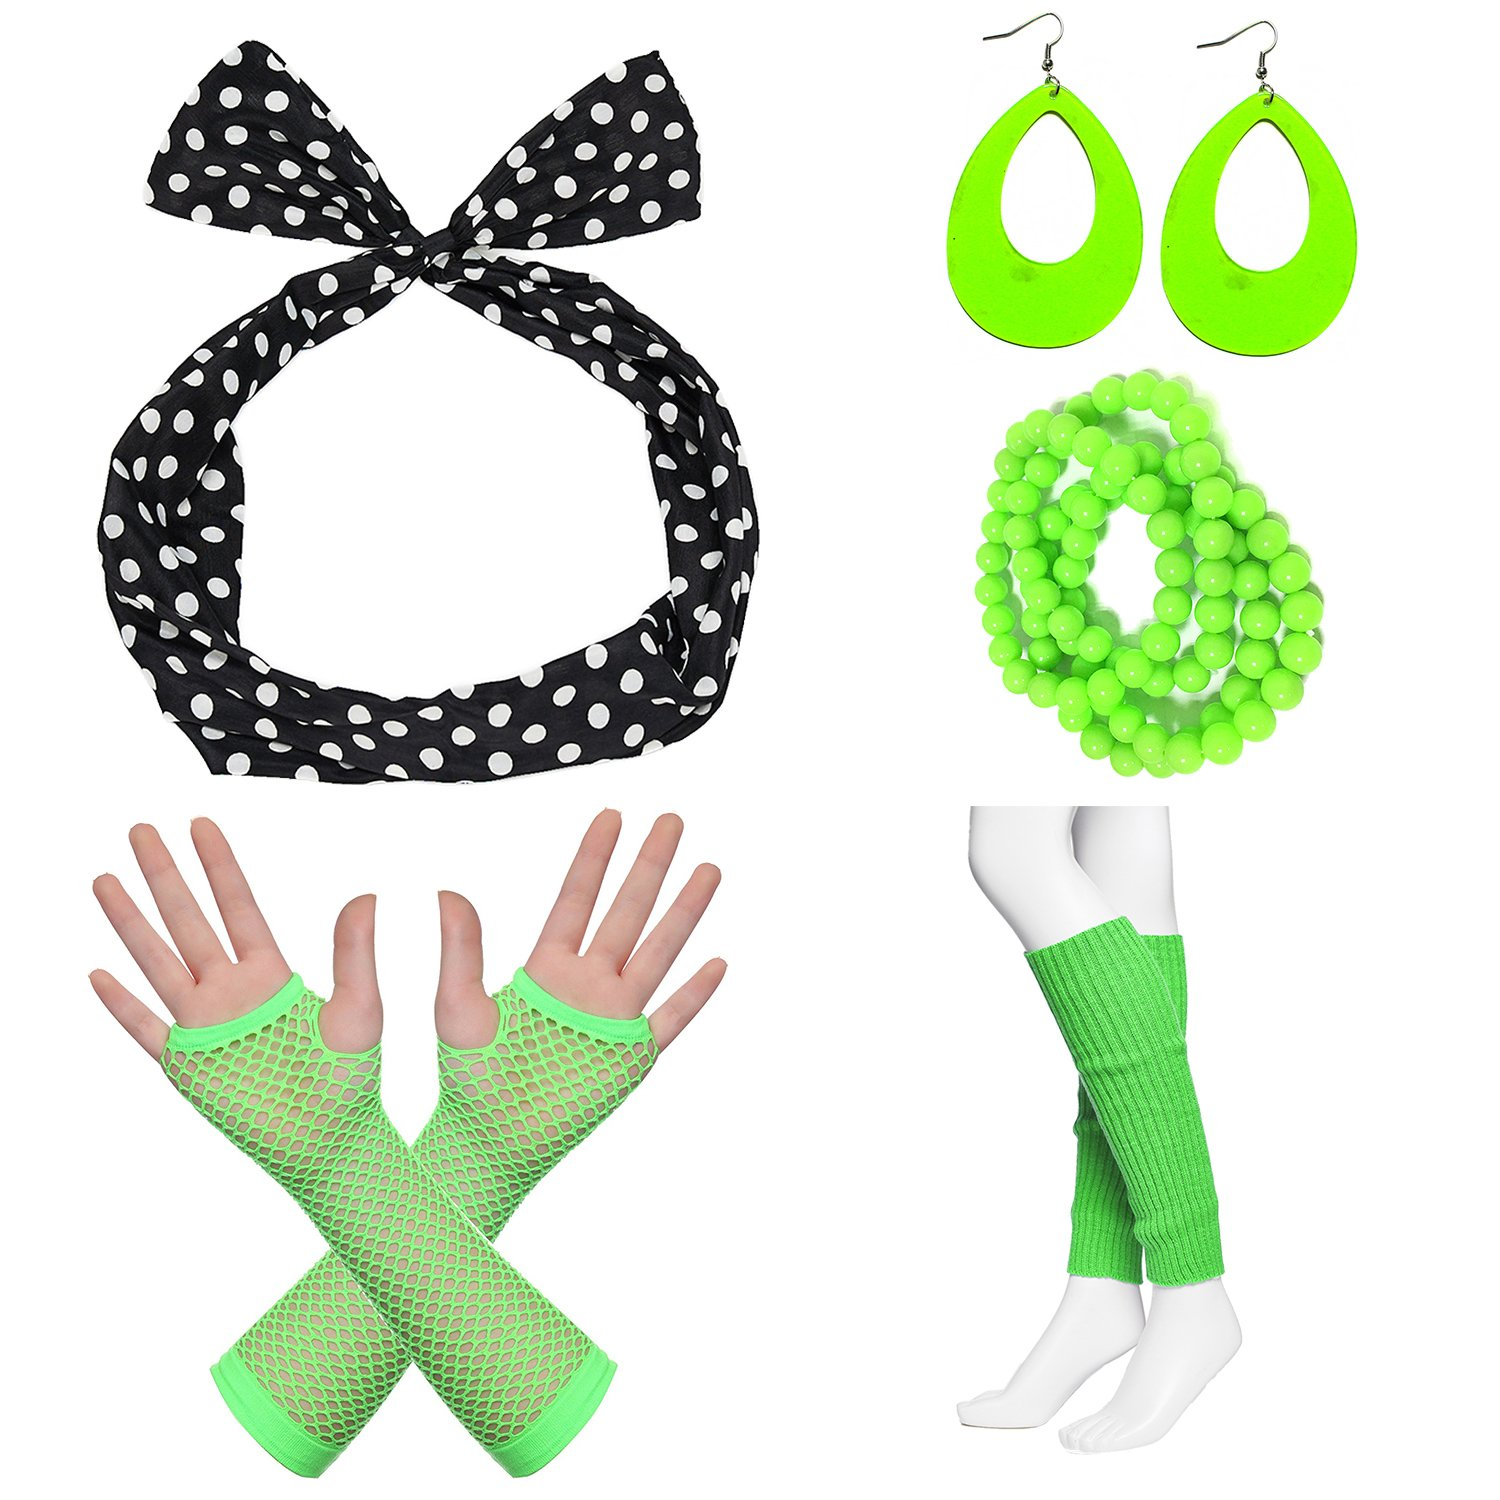 80s Fancy Outfit Costume Accessories Set,Leg Warmers,Fishnet Gloves,Earrings, Headband, Bracelet and Beads (OneSize, N17)